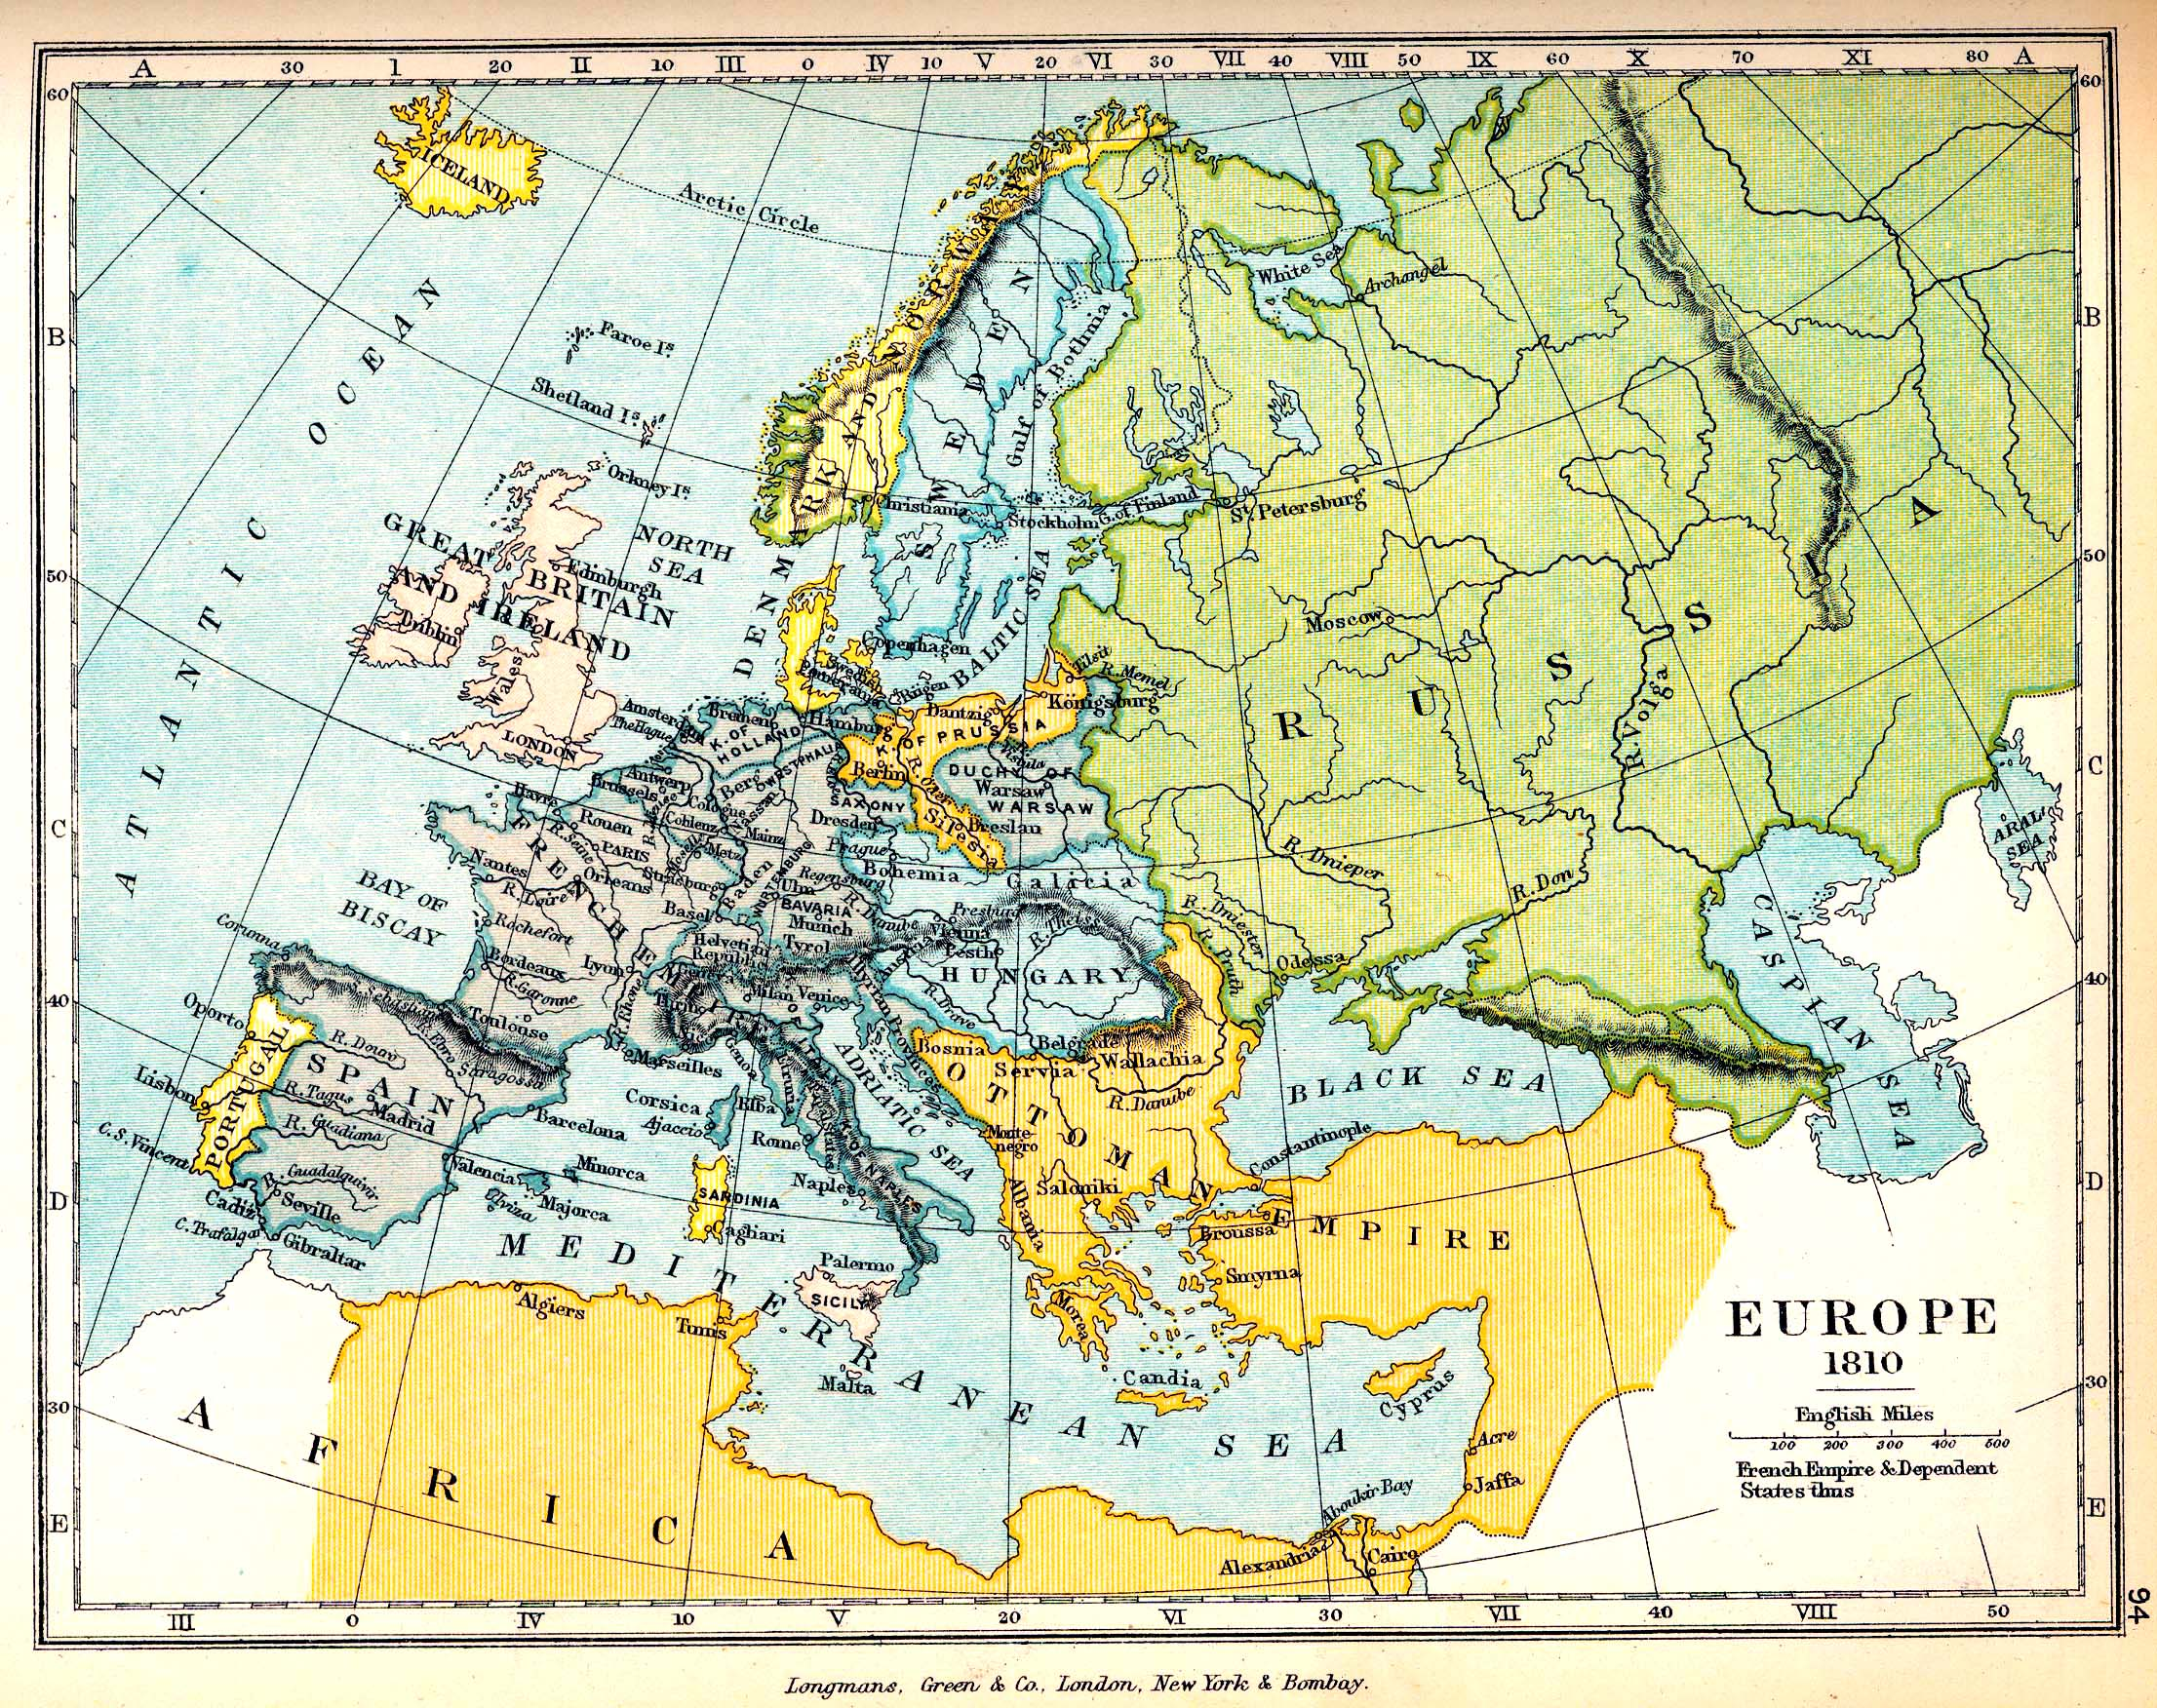 of Europe in 1810 The French Empire and Dependent States